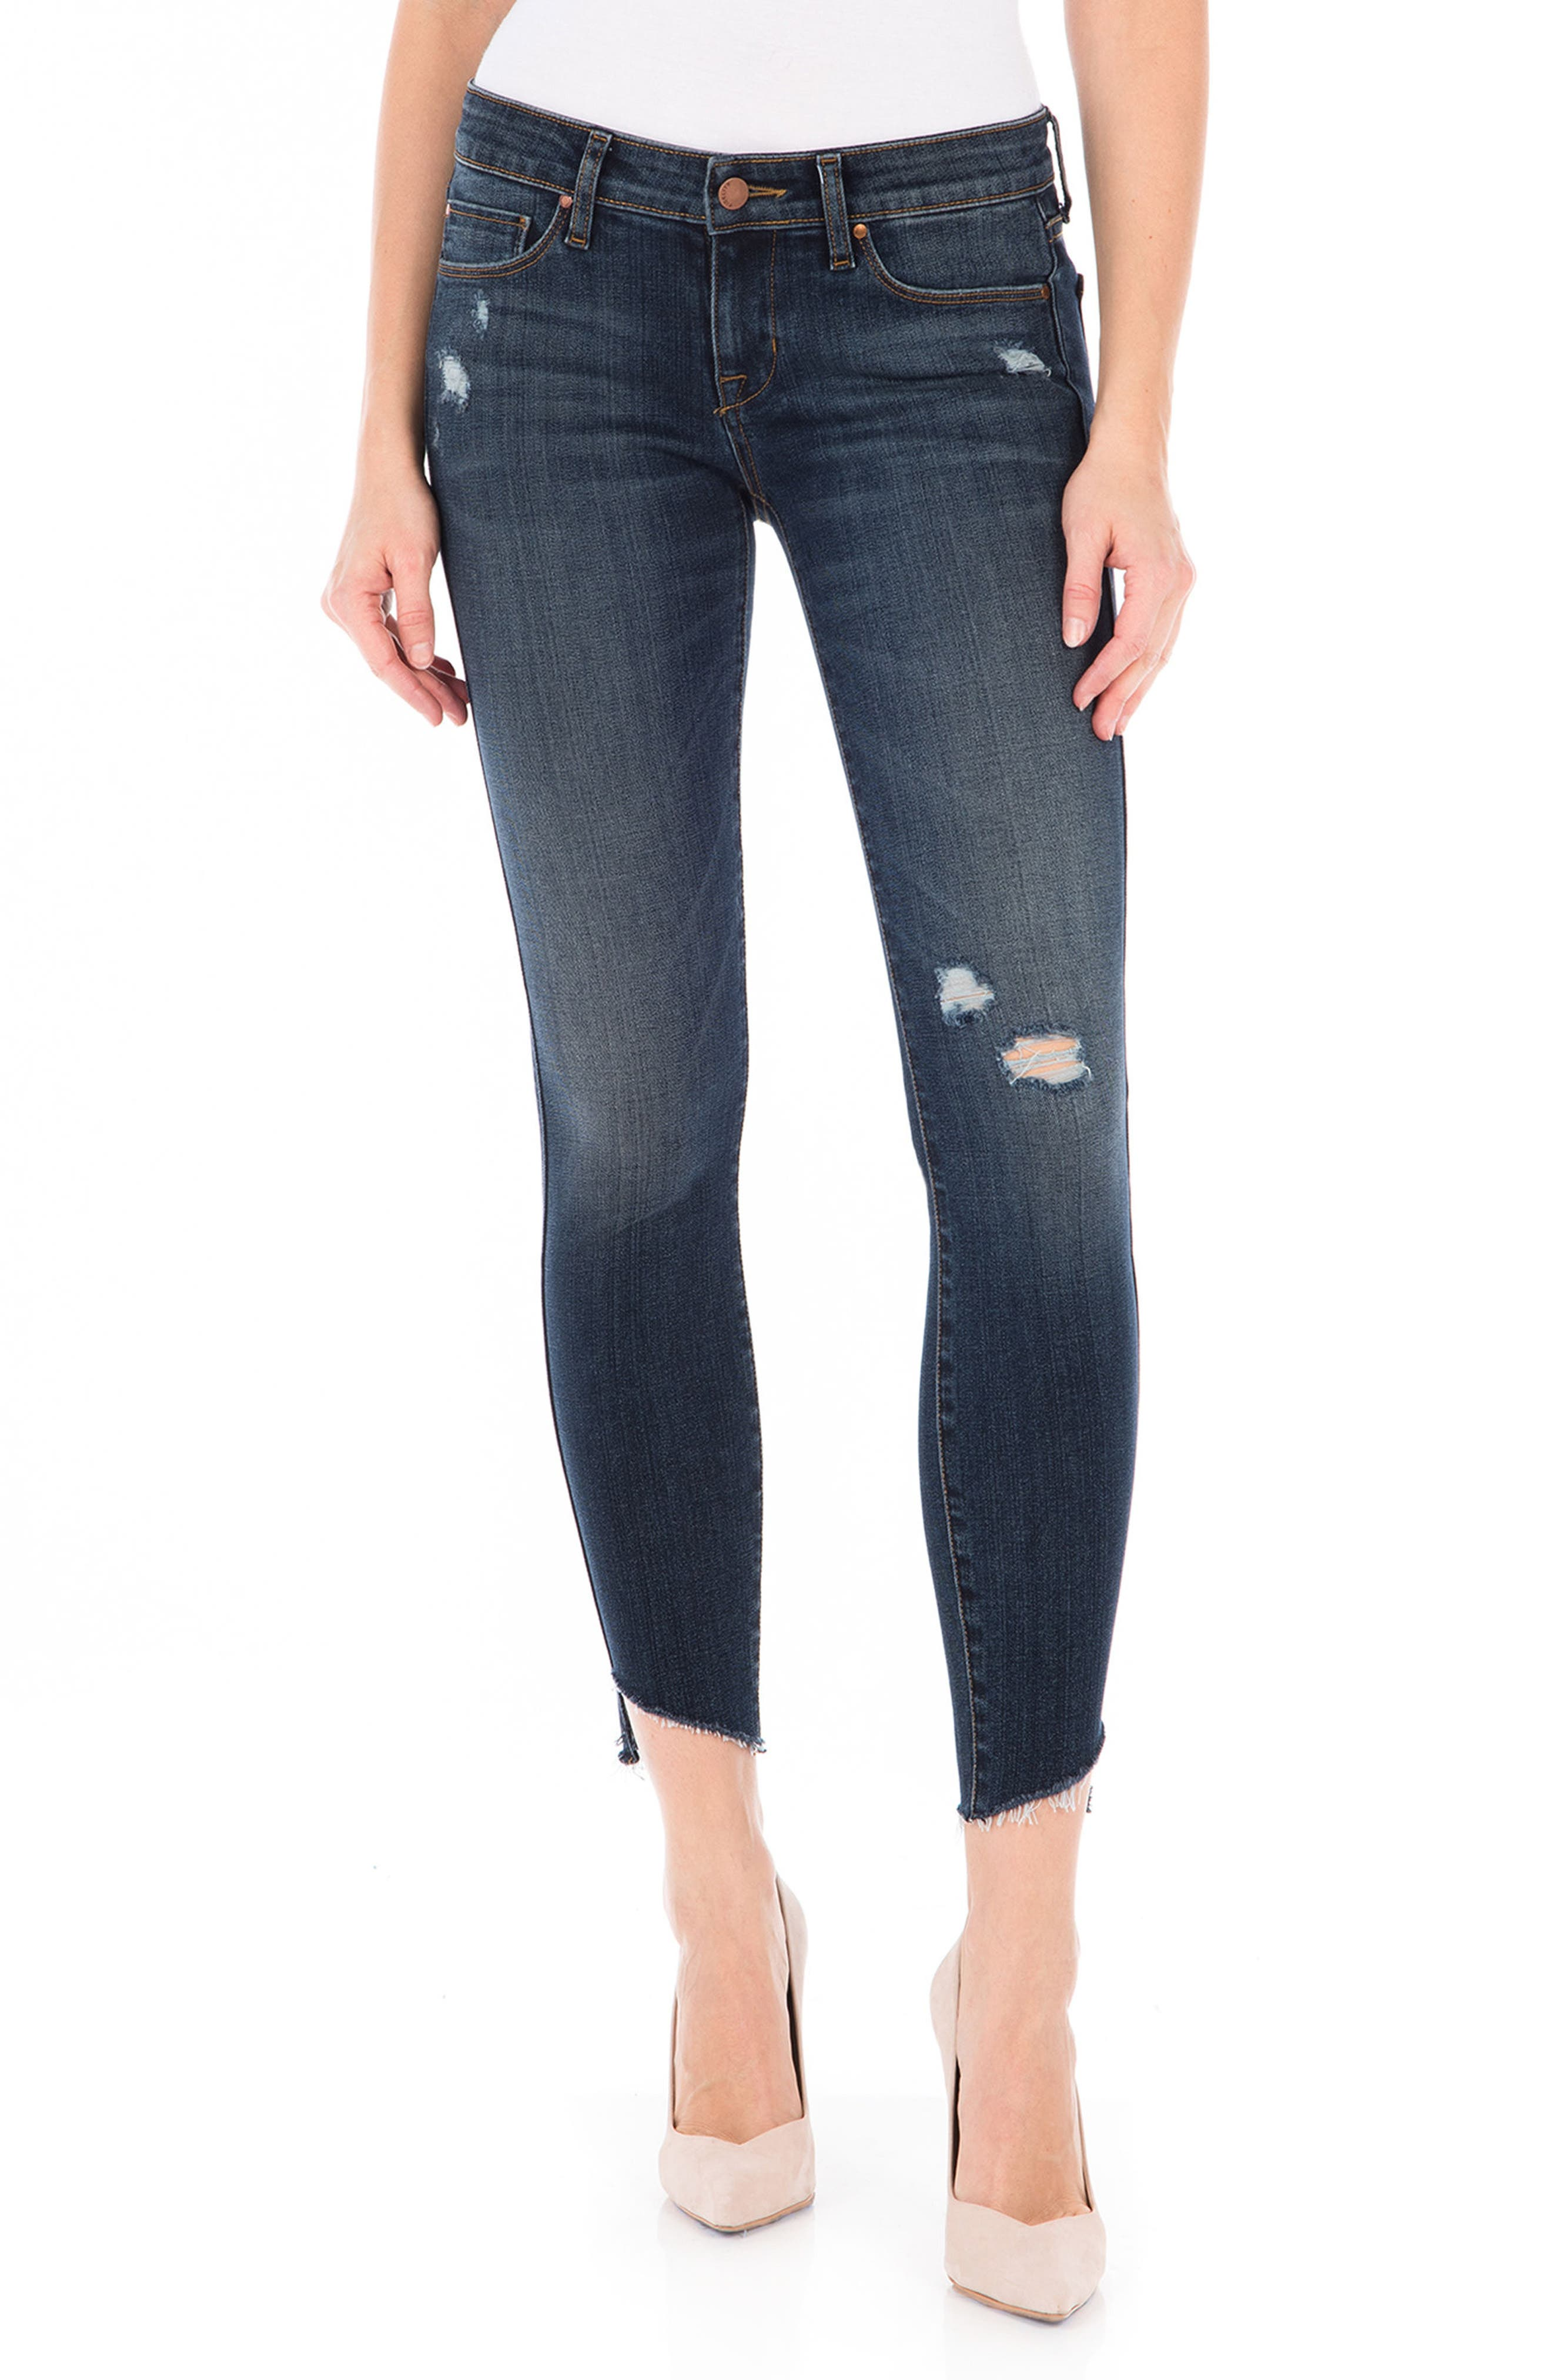 Mila Crop Skinny Jeans,                         Main,                         color, Refinery Blue